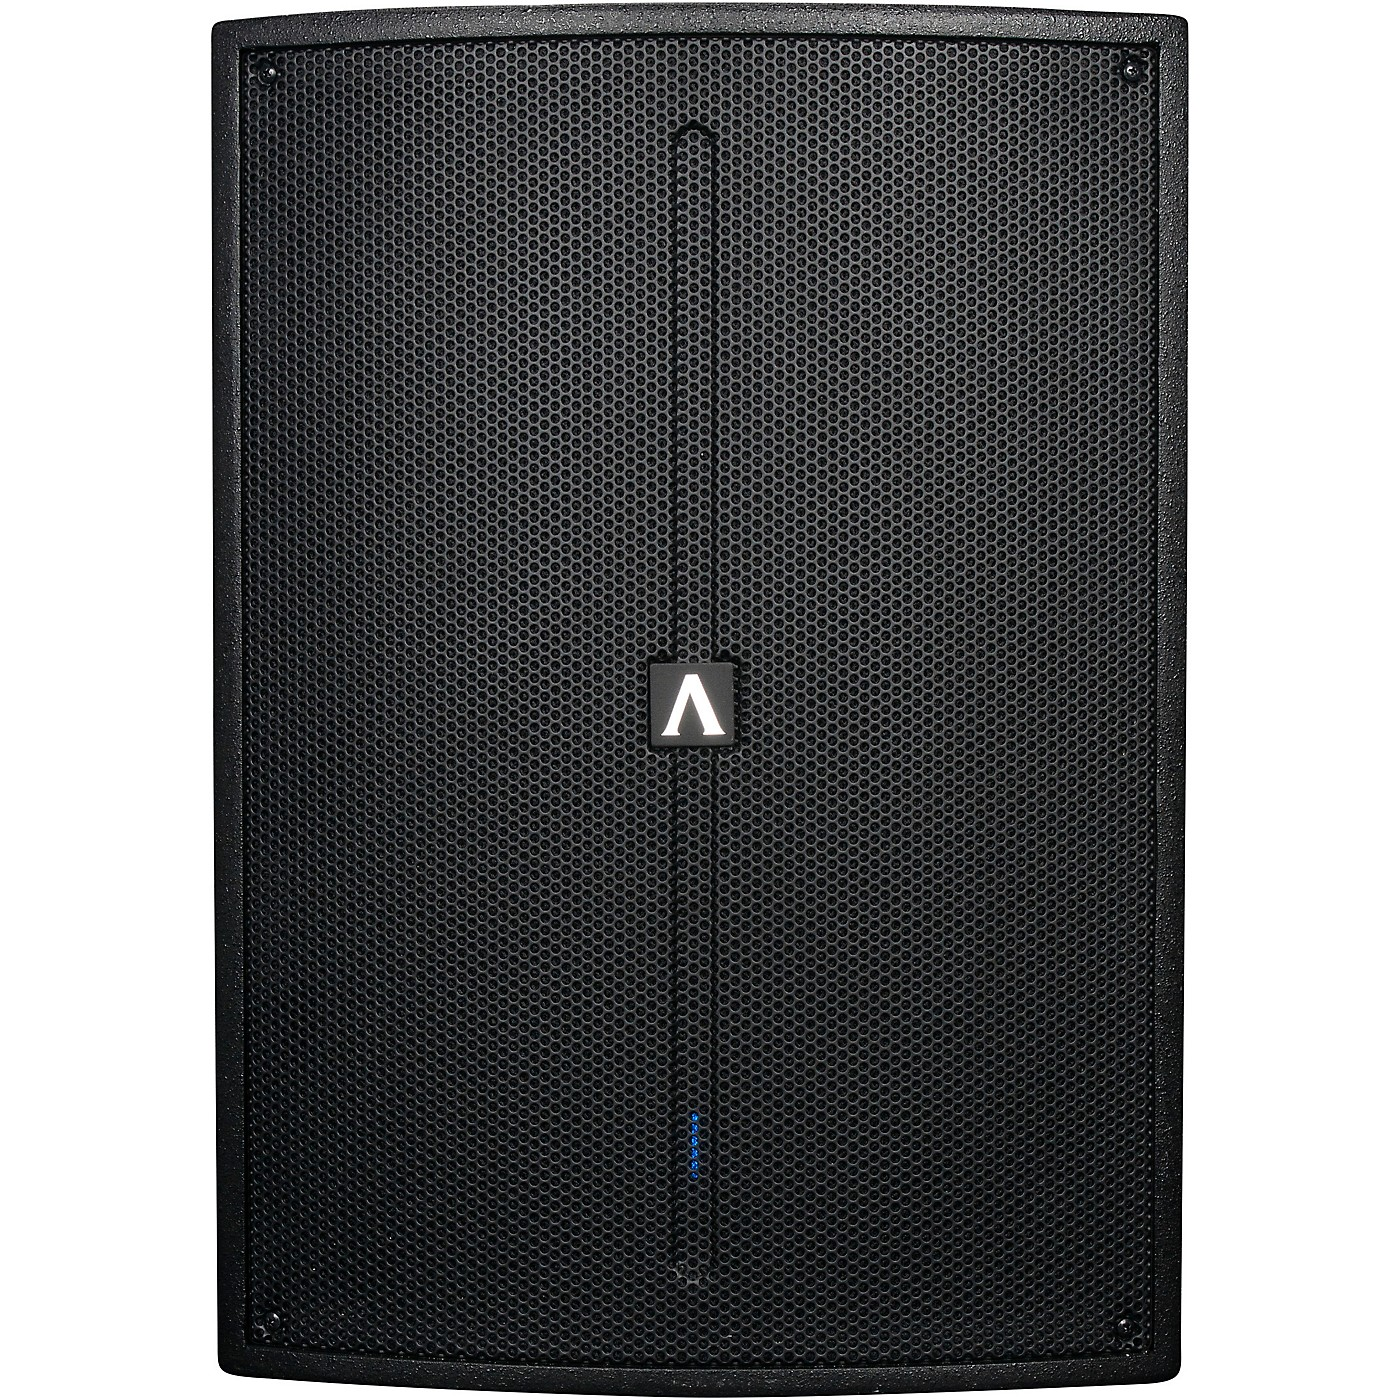 Avante A15S 15 in. Powered Subwoofer with DSP and Cardioid Coverage thumbnail